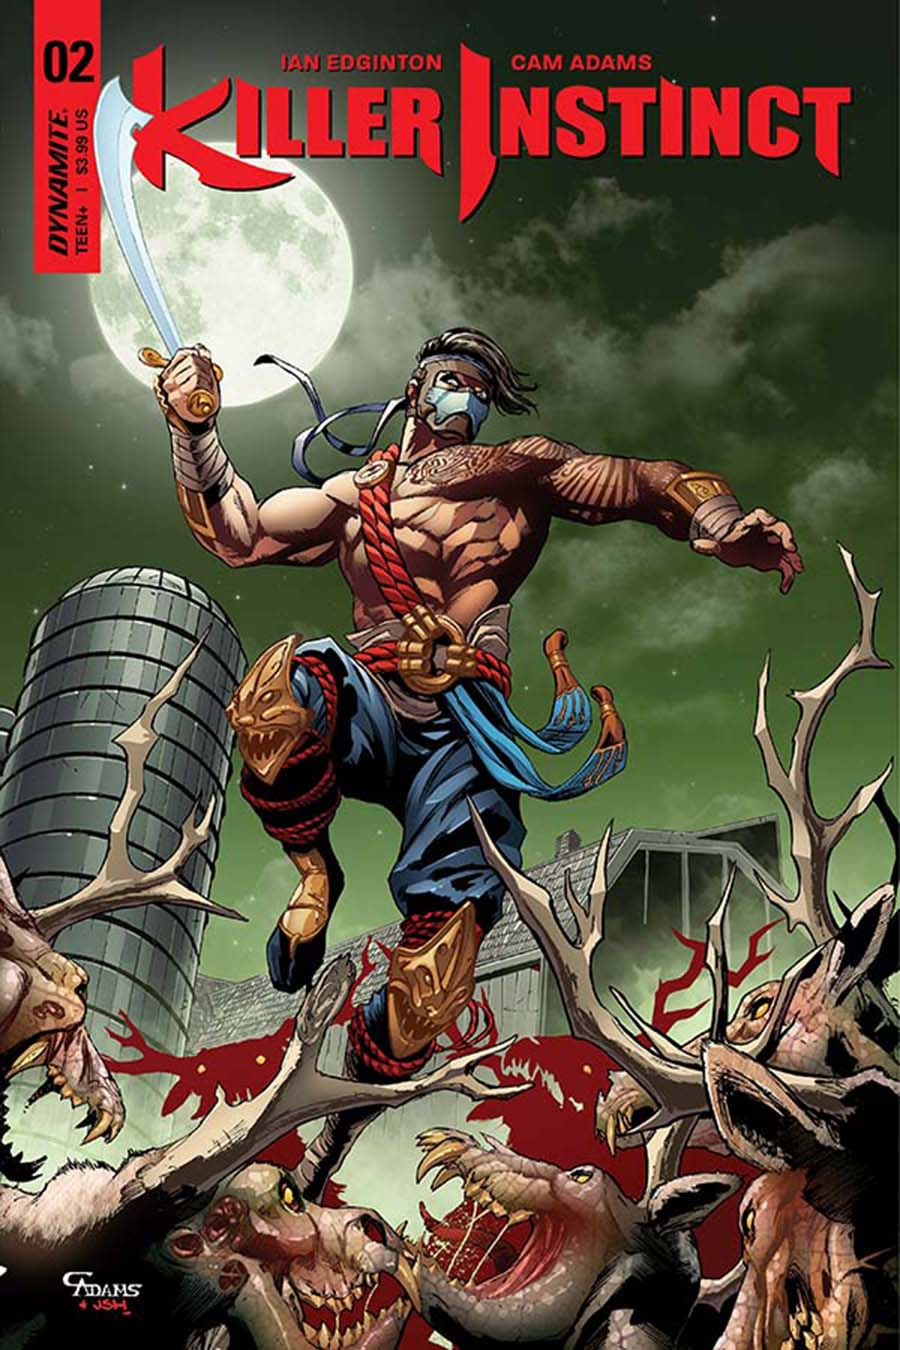 Killer Instinct Vol 2 #2 Cover C Variant Cam Adams Subscription Cover